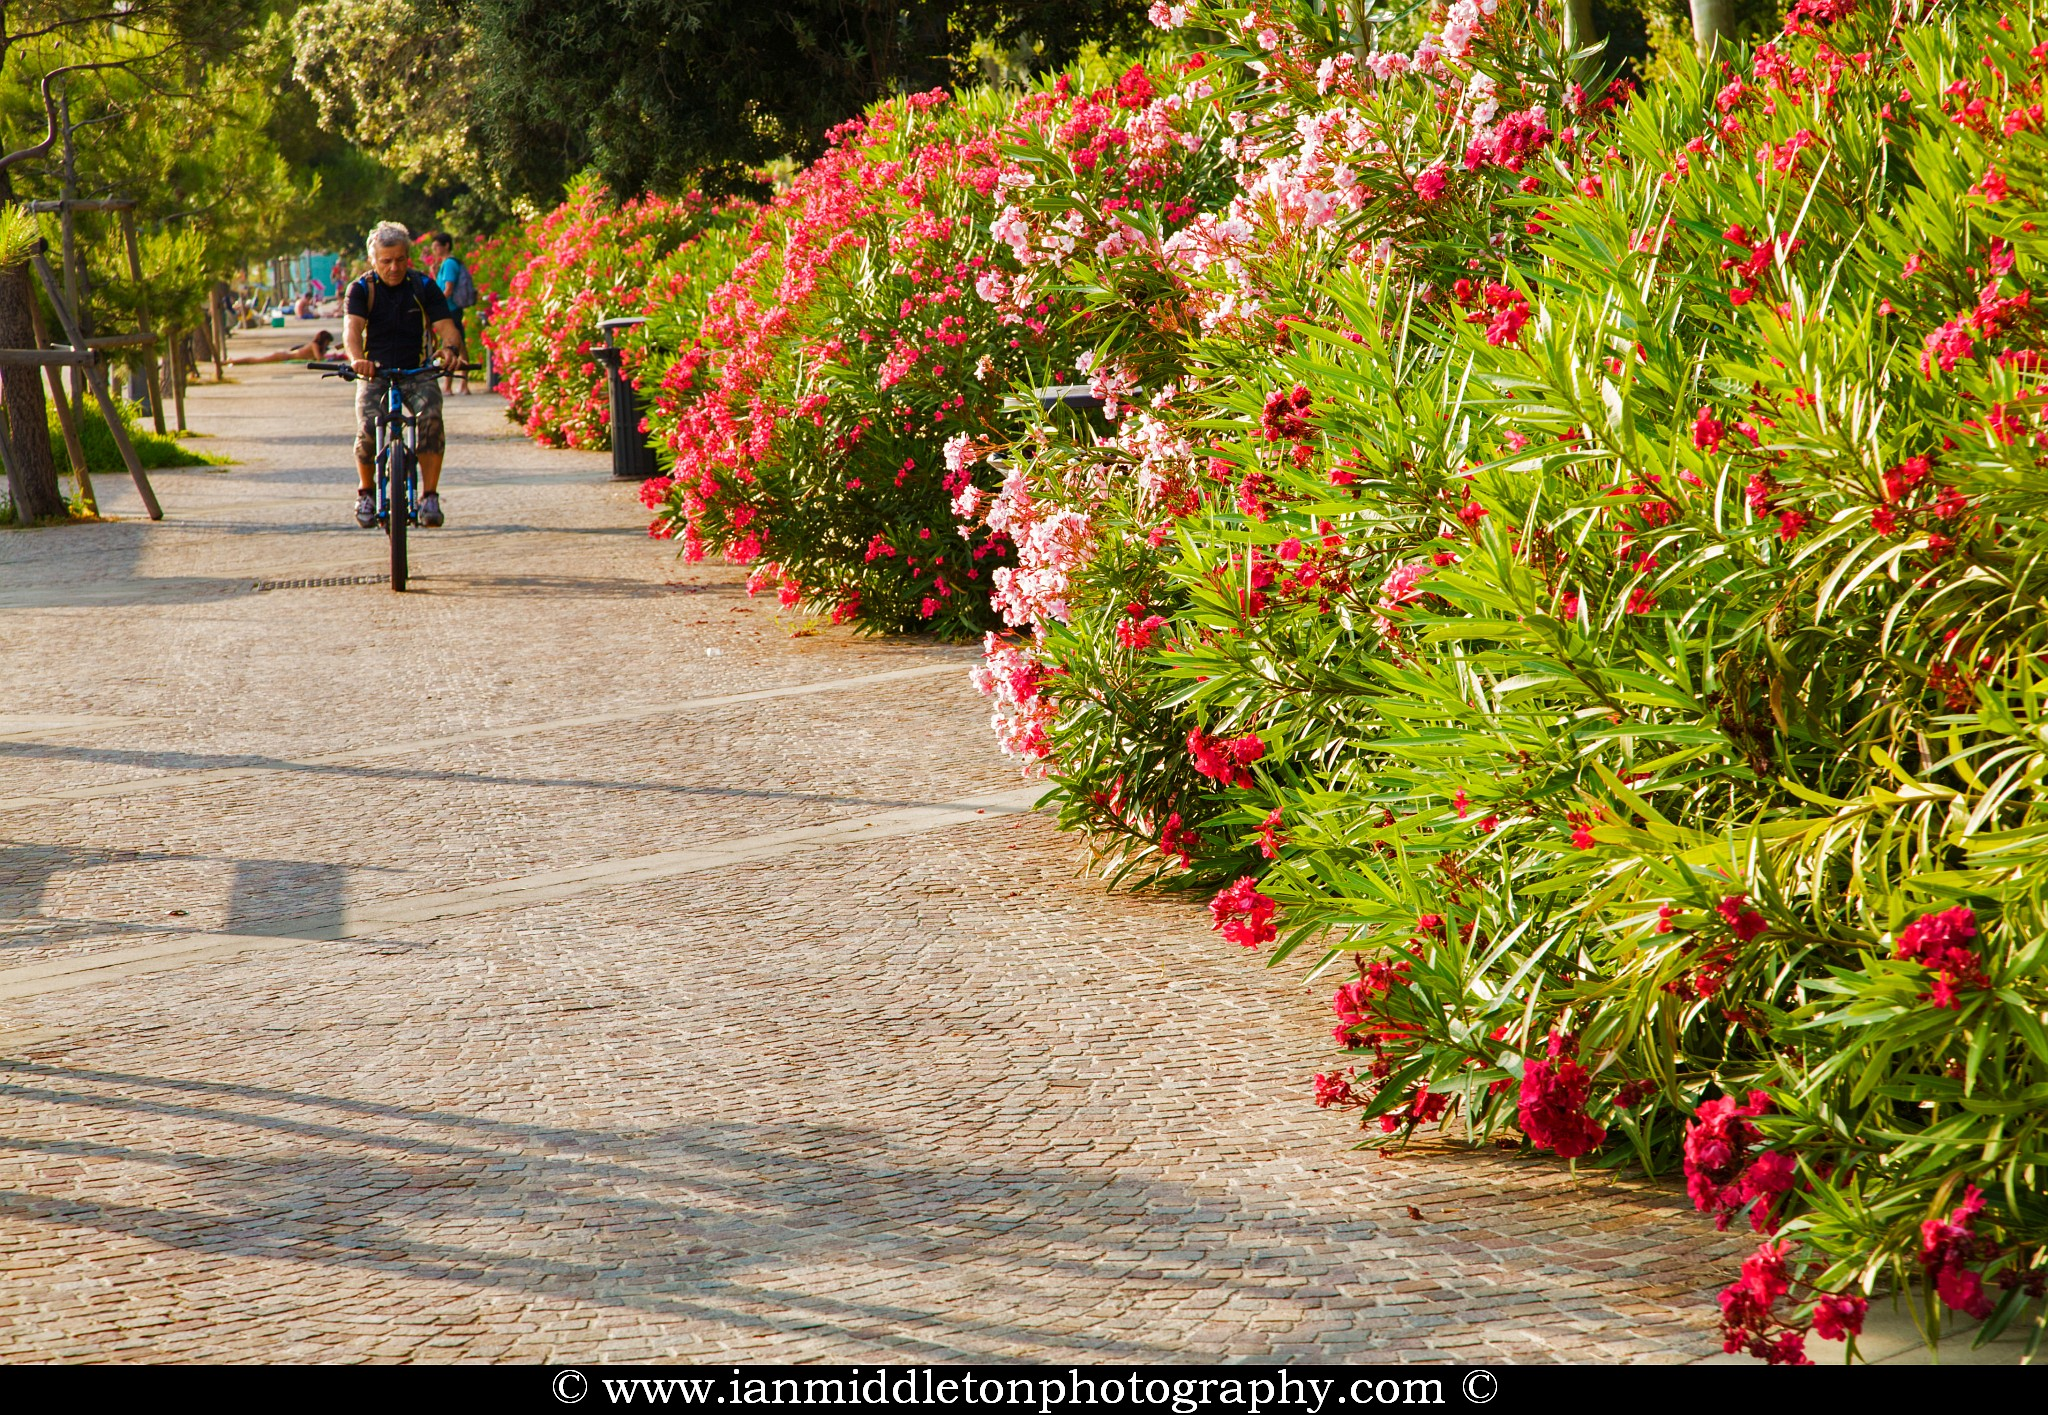 Man cycling along the beautiful Viale Miramare promenade lined with Oleander flowers in Barcola, Trieste, Italy.